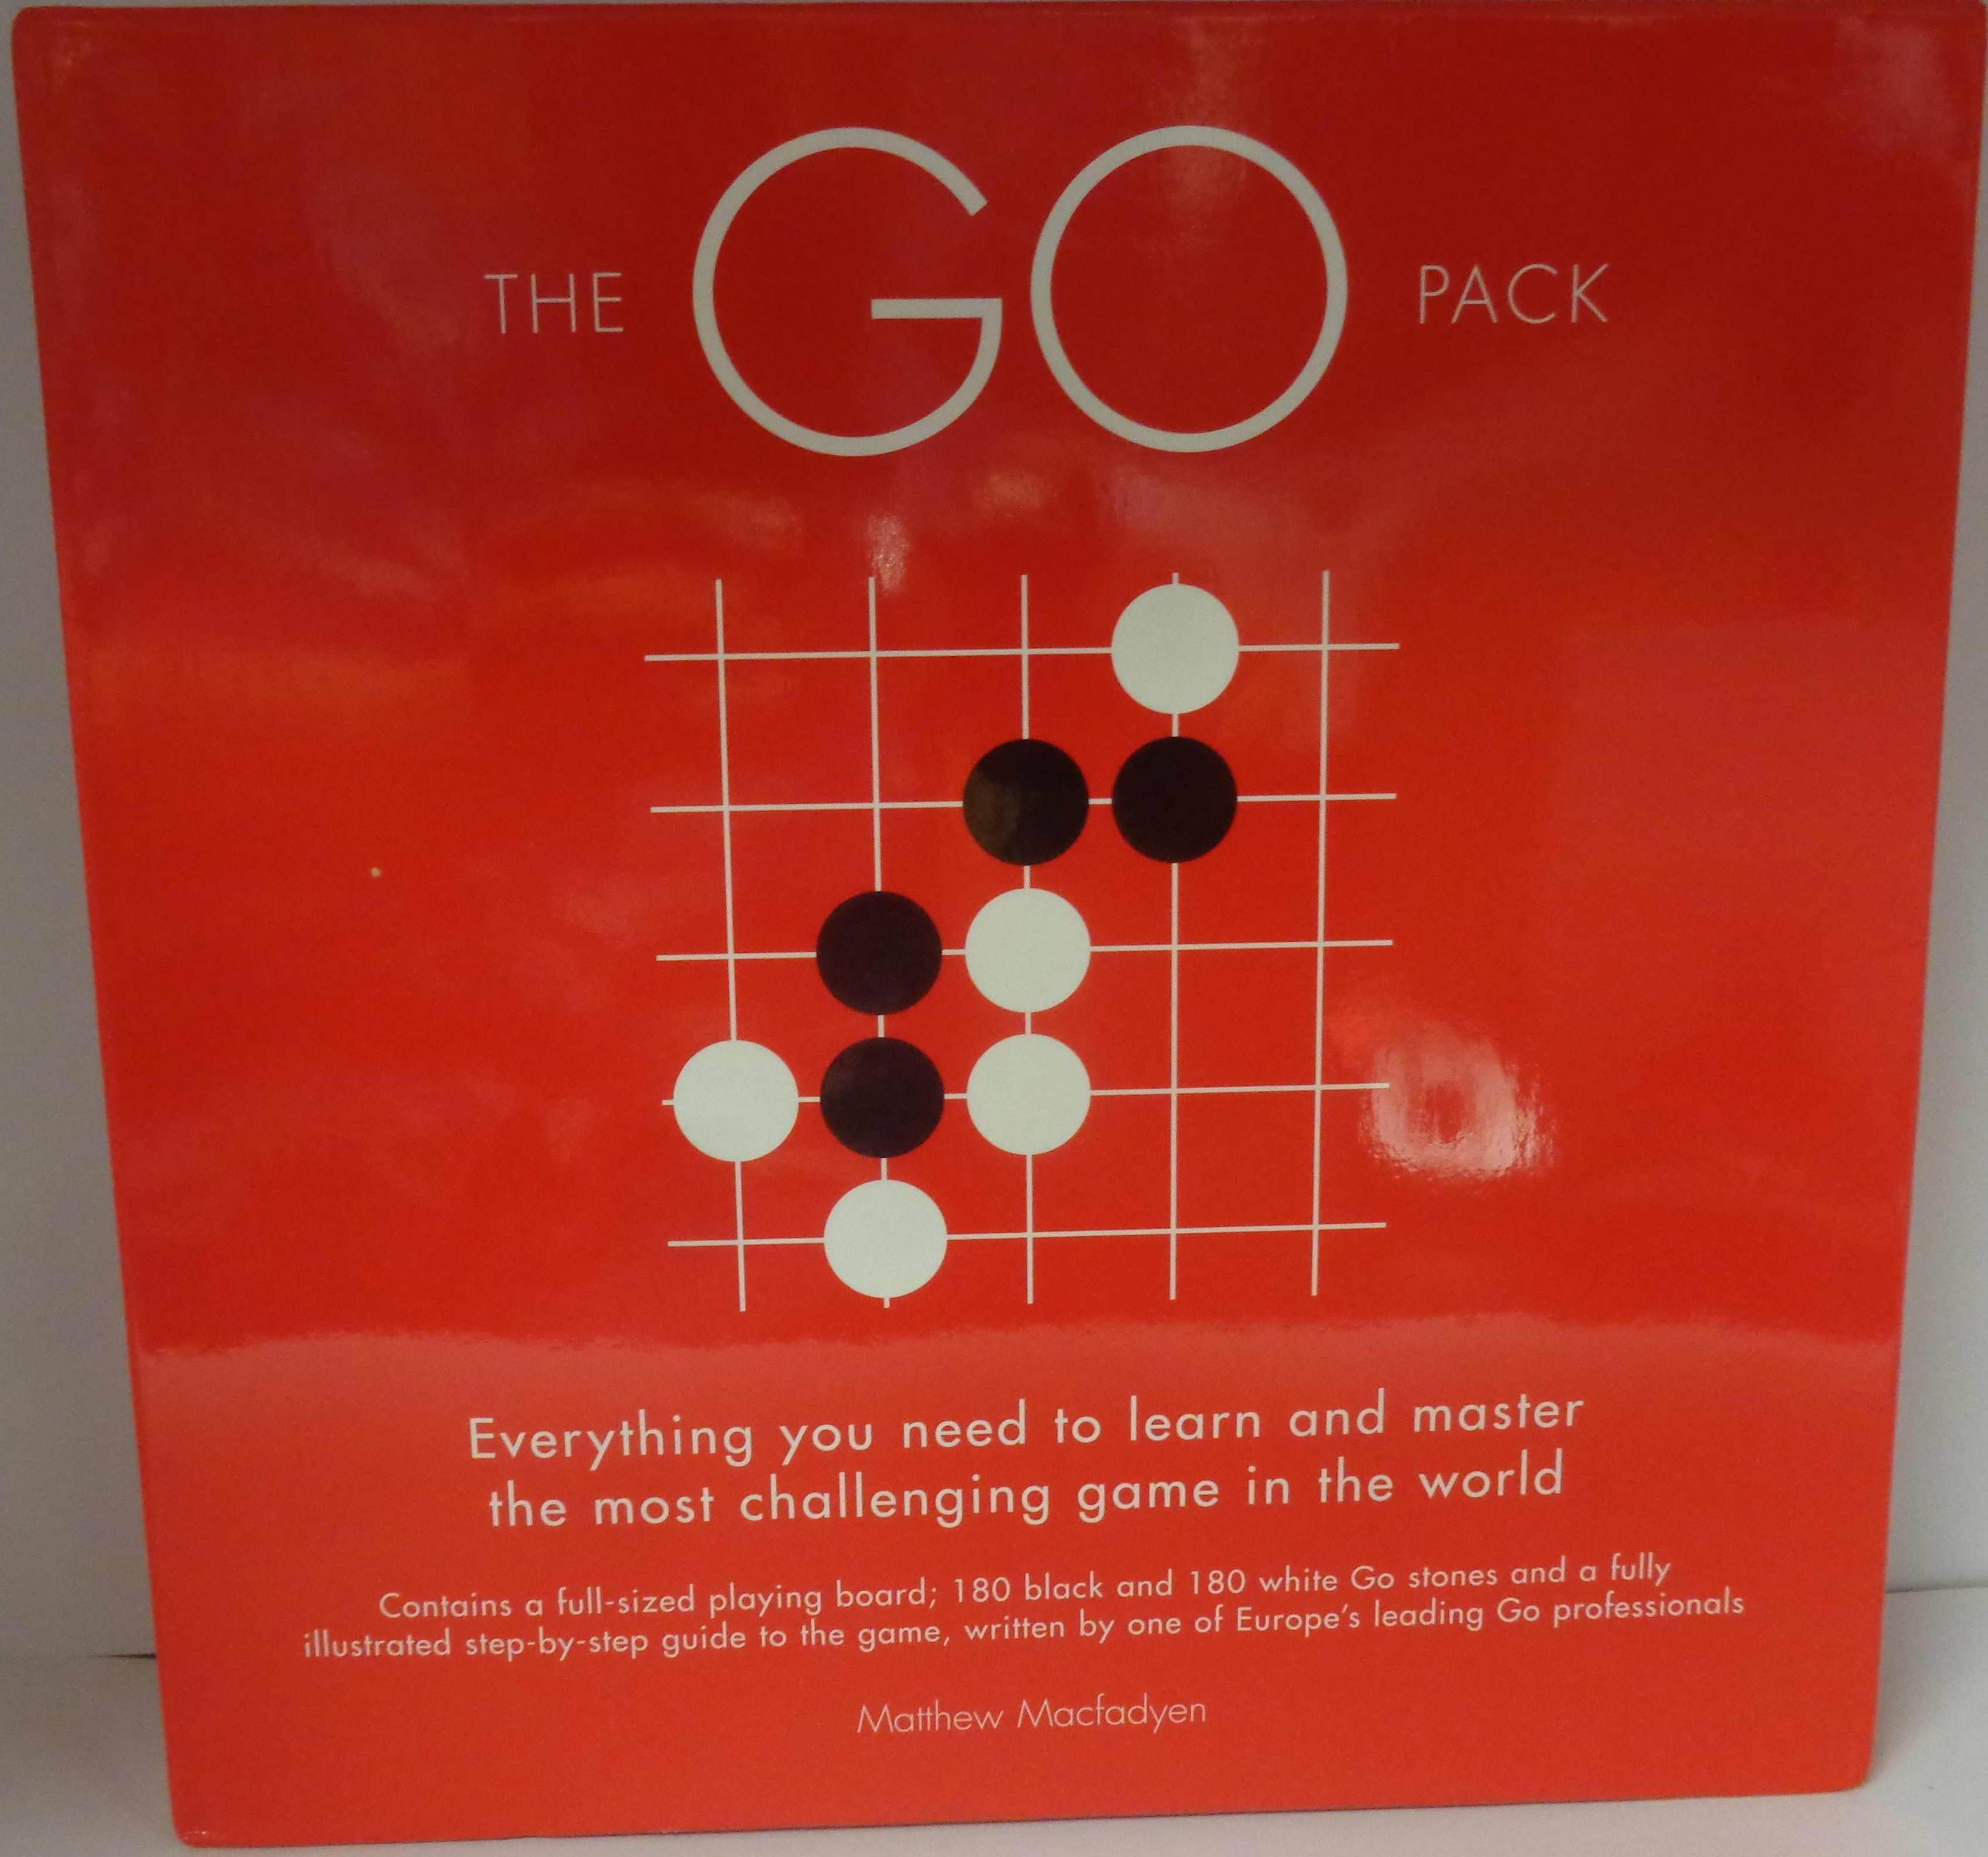 The Go Pack: Everything You Need to Learn and Master the Most Challenging Game in the World